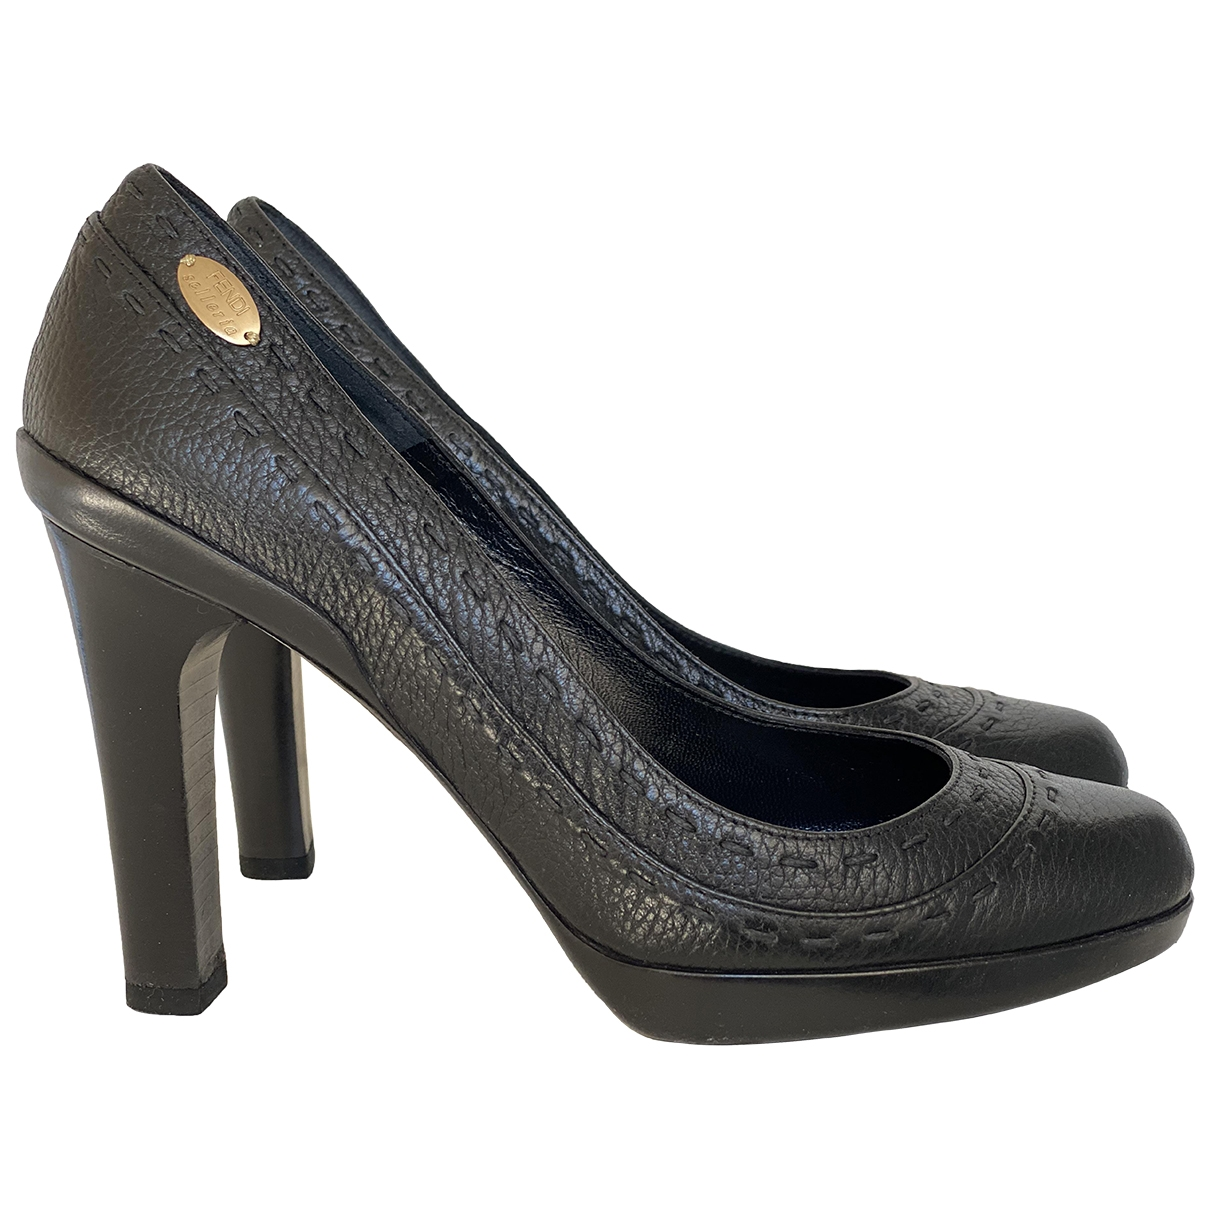 Fendi \N Pumps in  Schwarz Leder